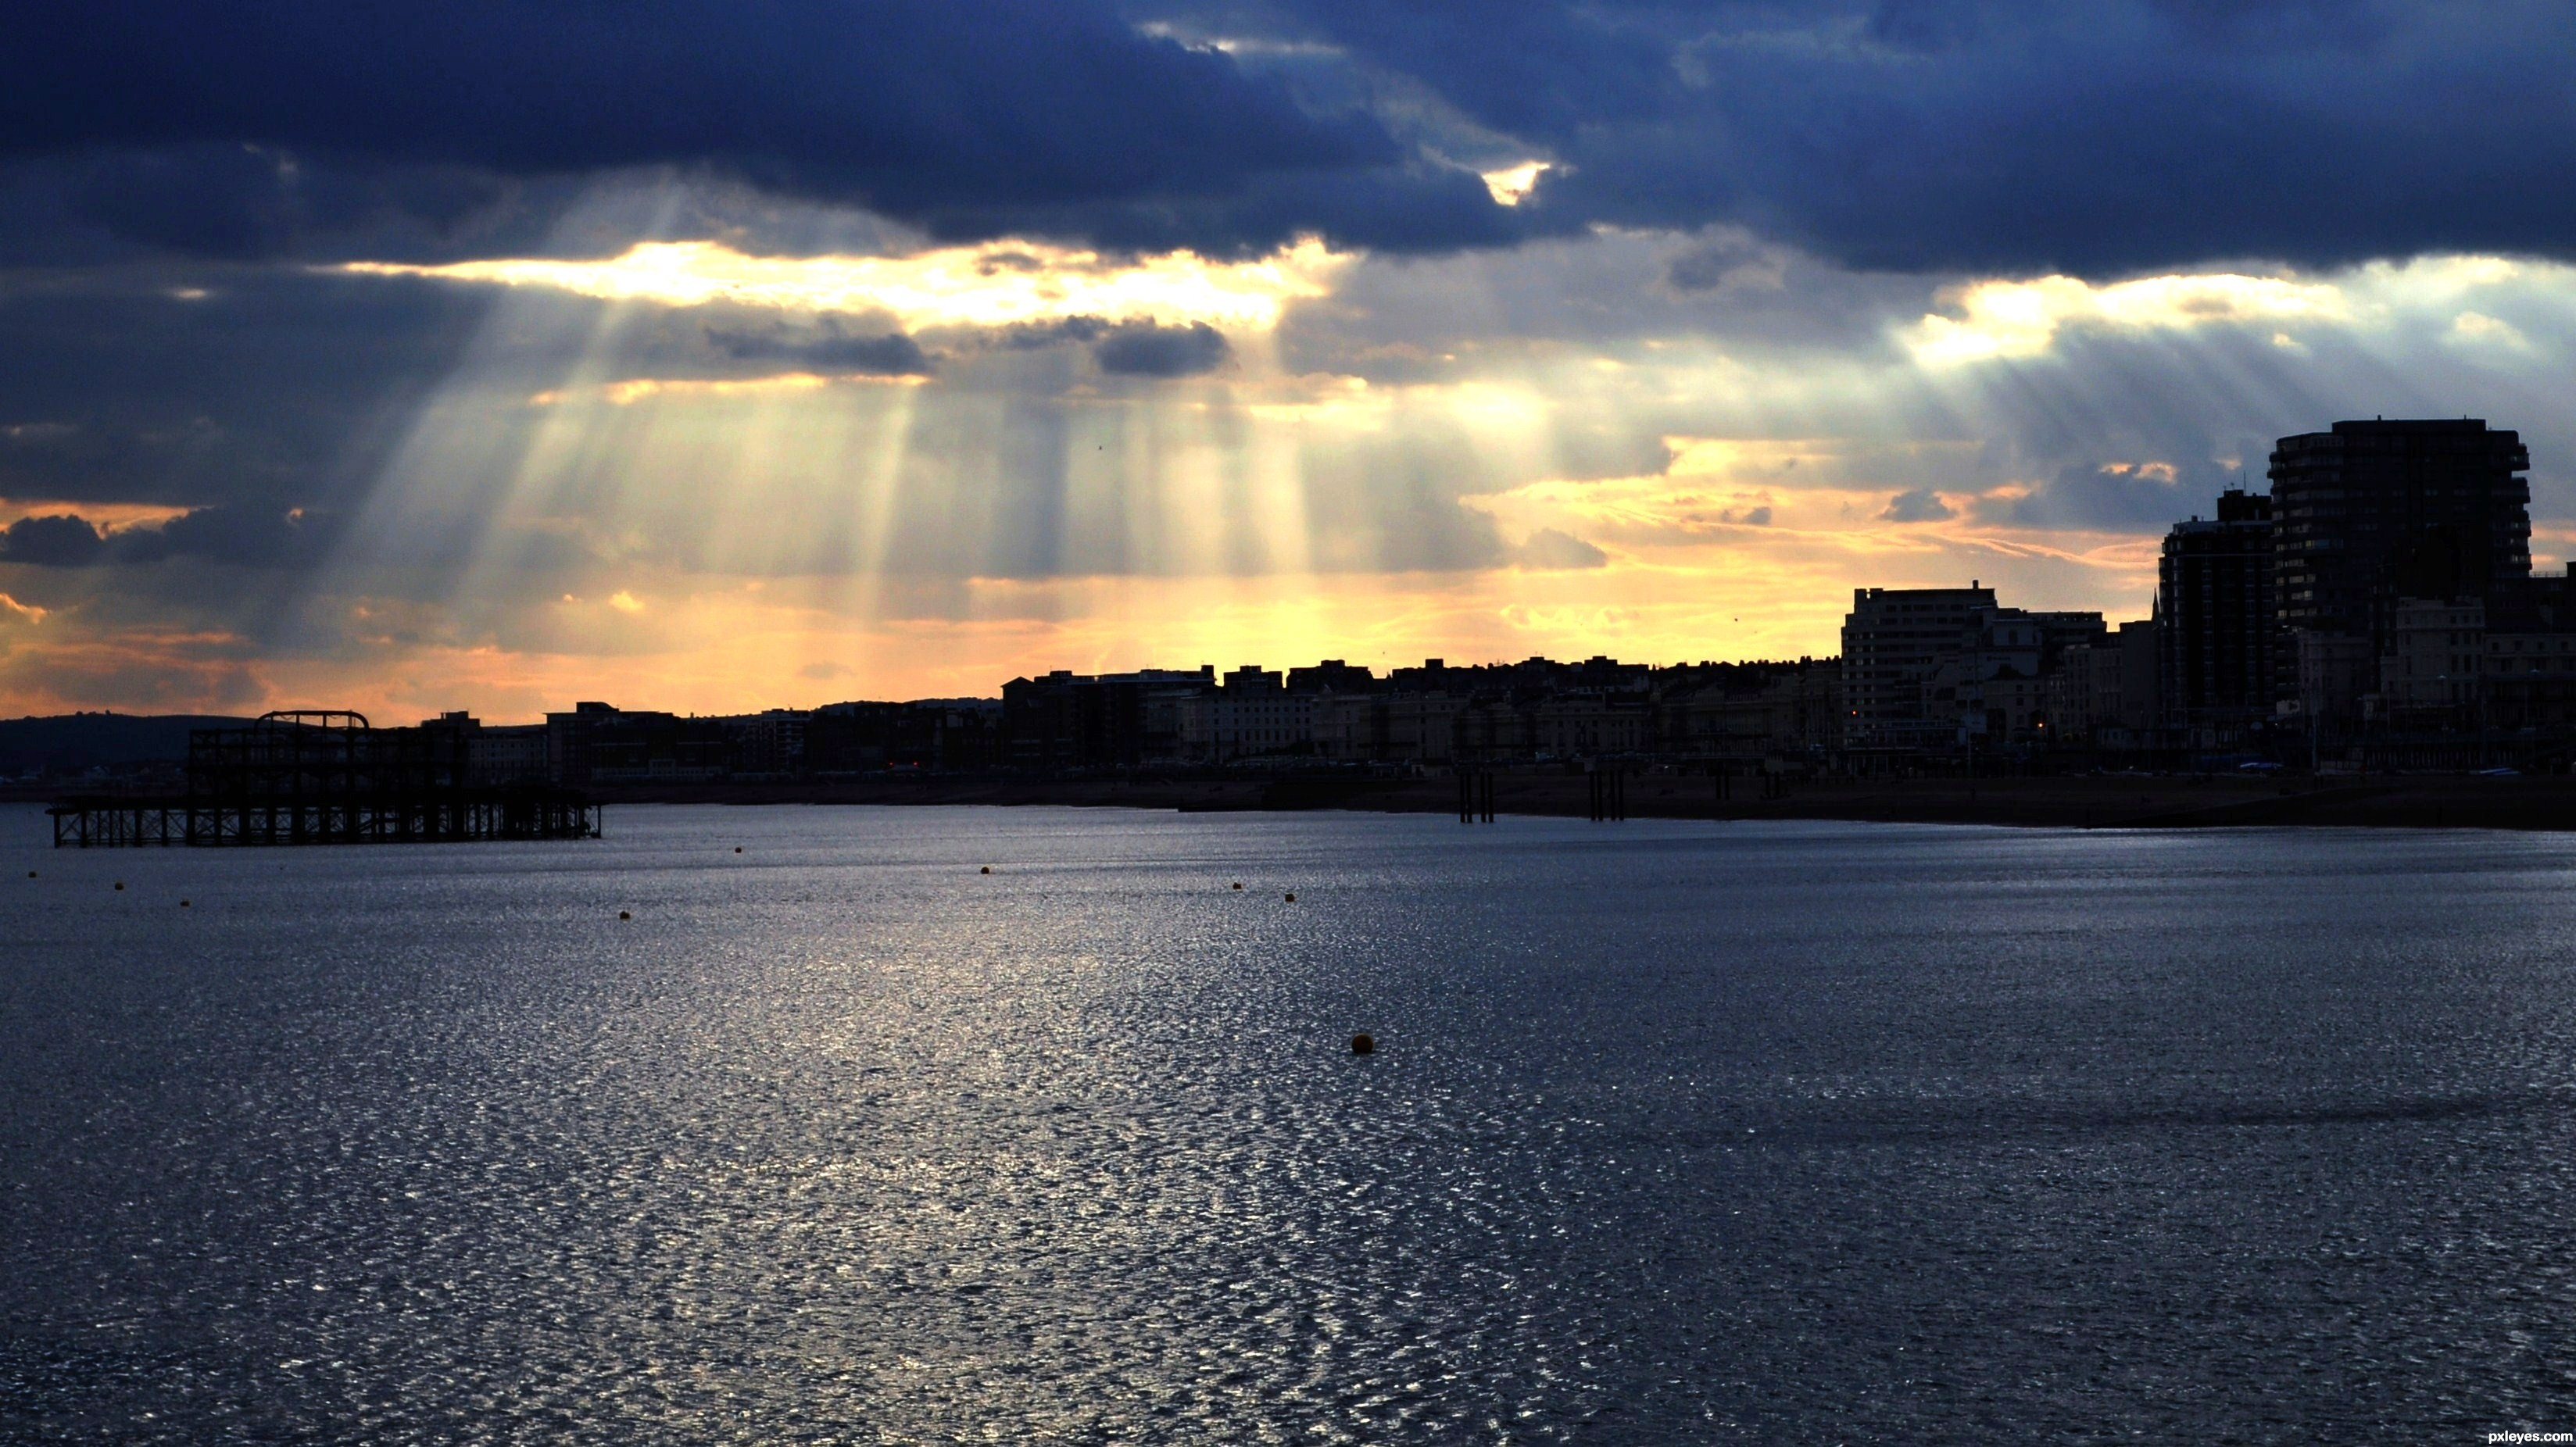 Ray of sunshine picture, by dato_t for: light rays 2